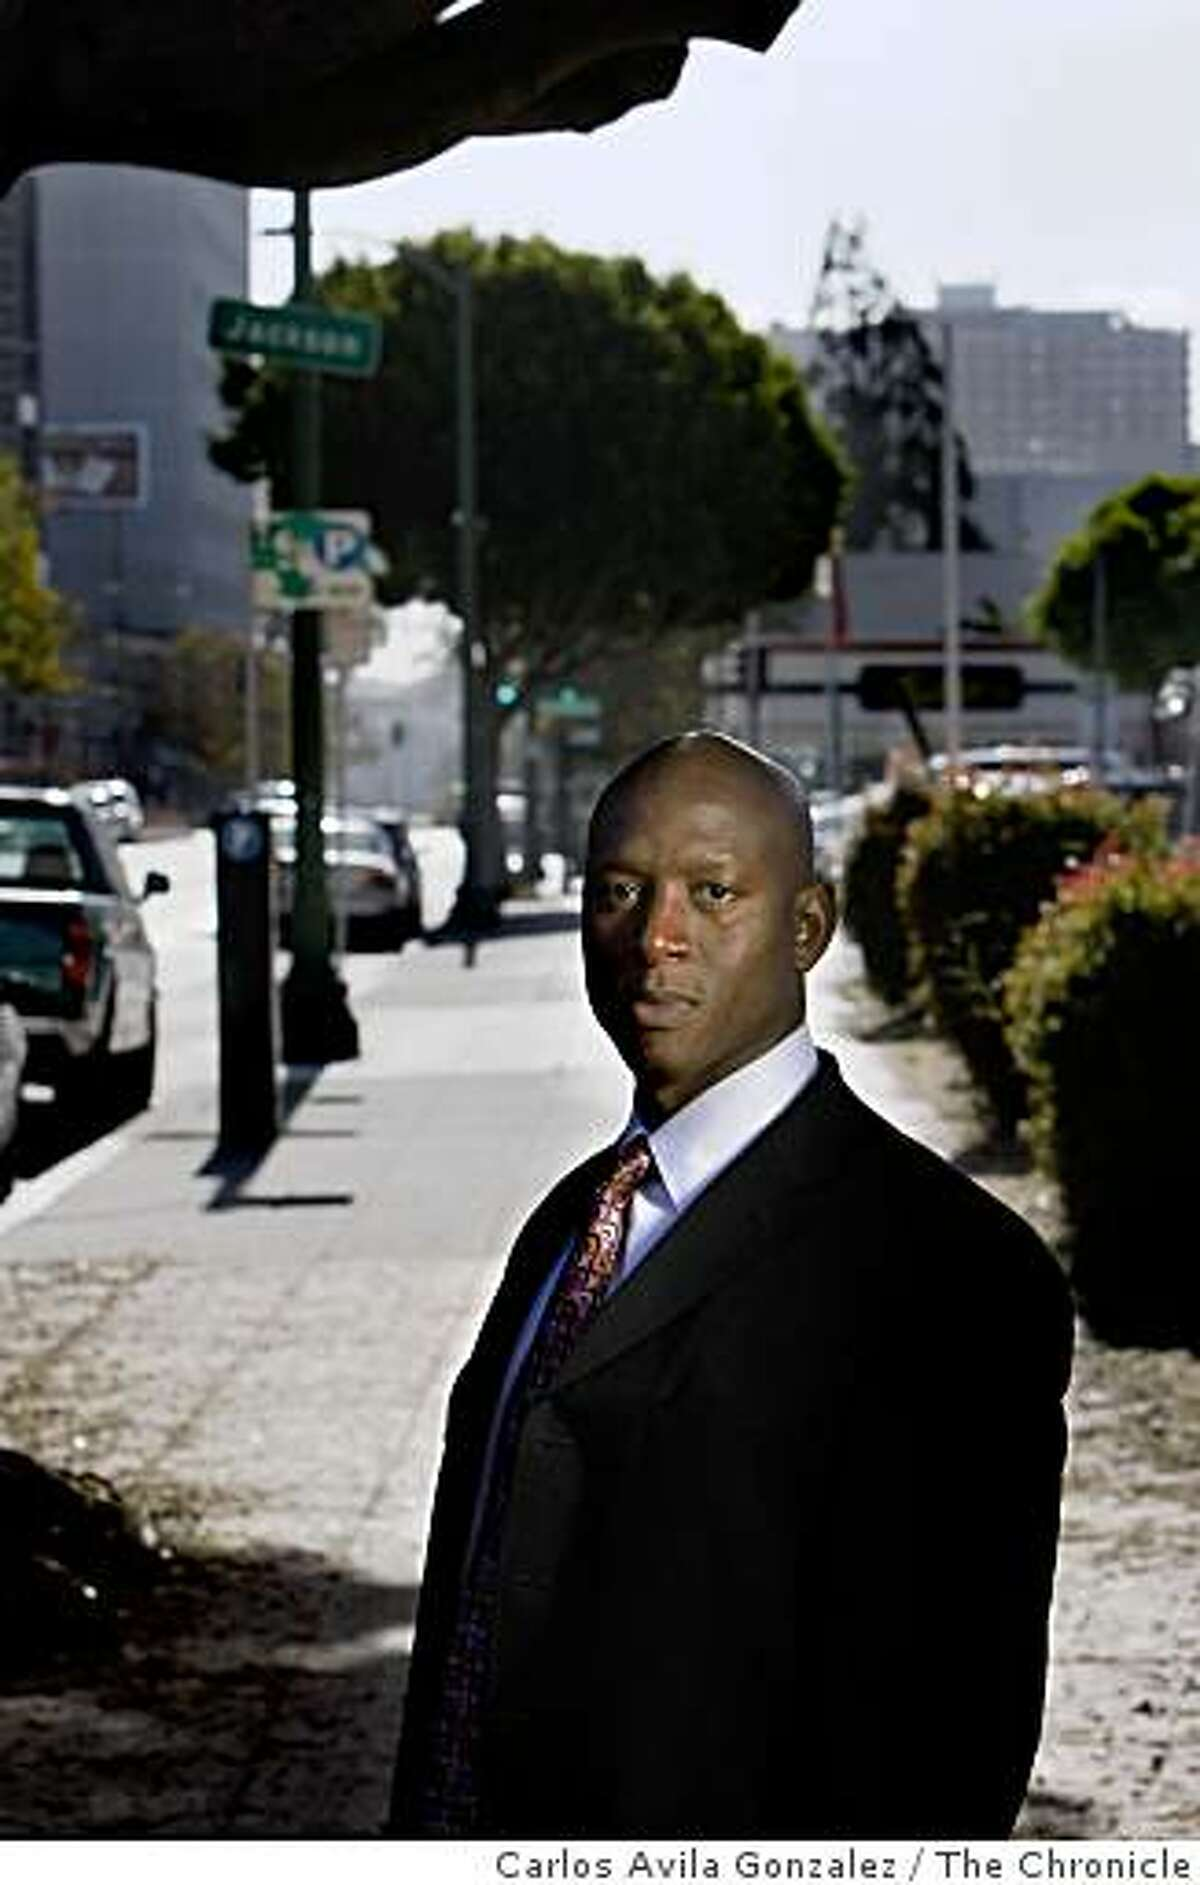 Oakland Police Detective Derwin Longmire stands near the spot on September 18, 2007, where Chauncey Bailey, the editor of the Oakland Post was killed, in Oakland, Calif.